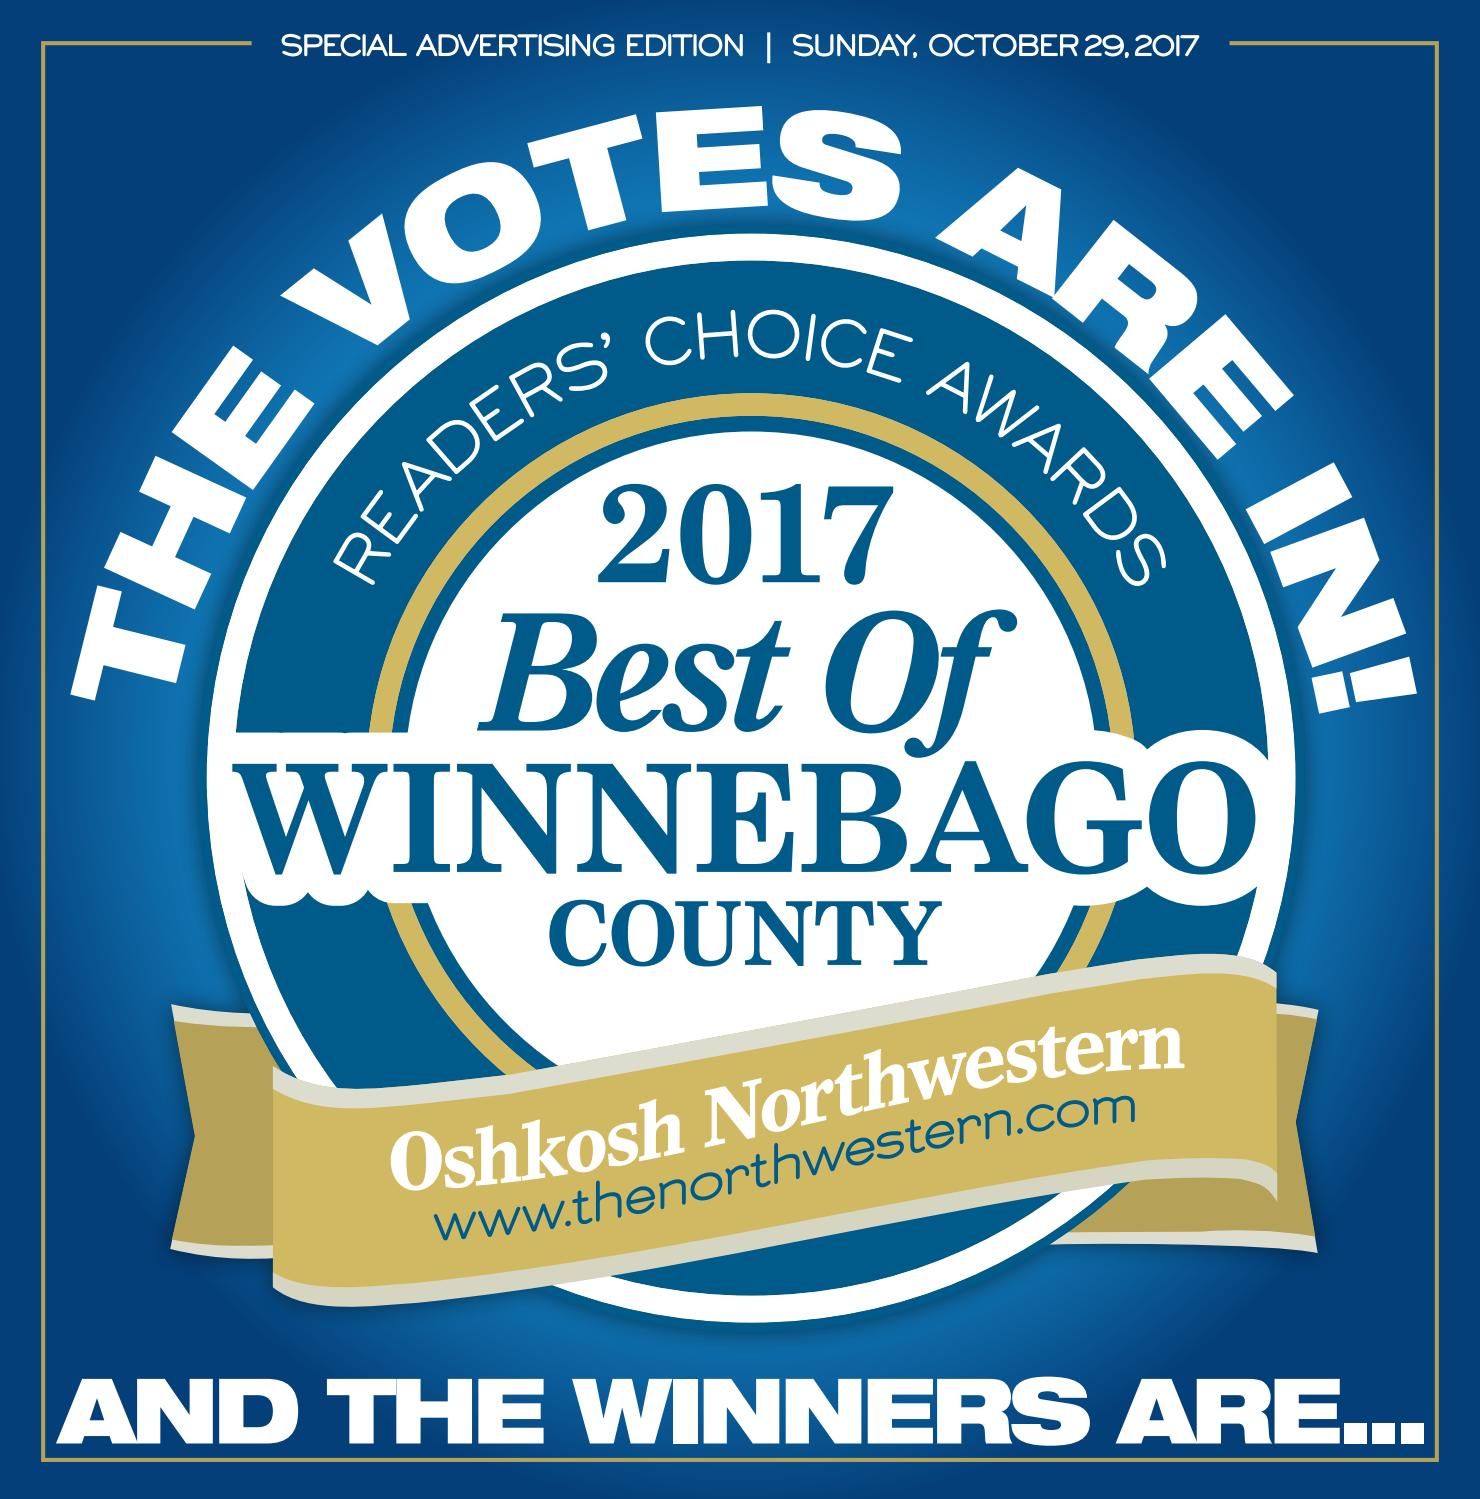 2017 Best of Winnebago County Results Tab by Gannett Wisconsin Media ...